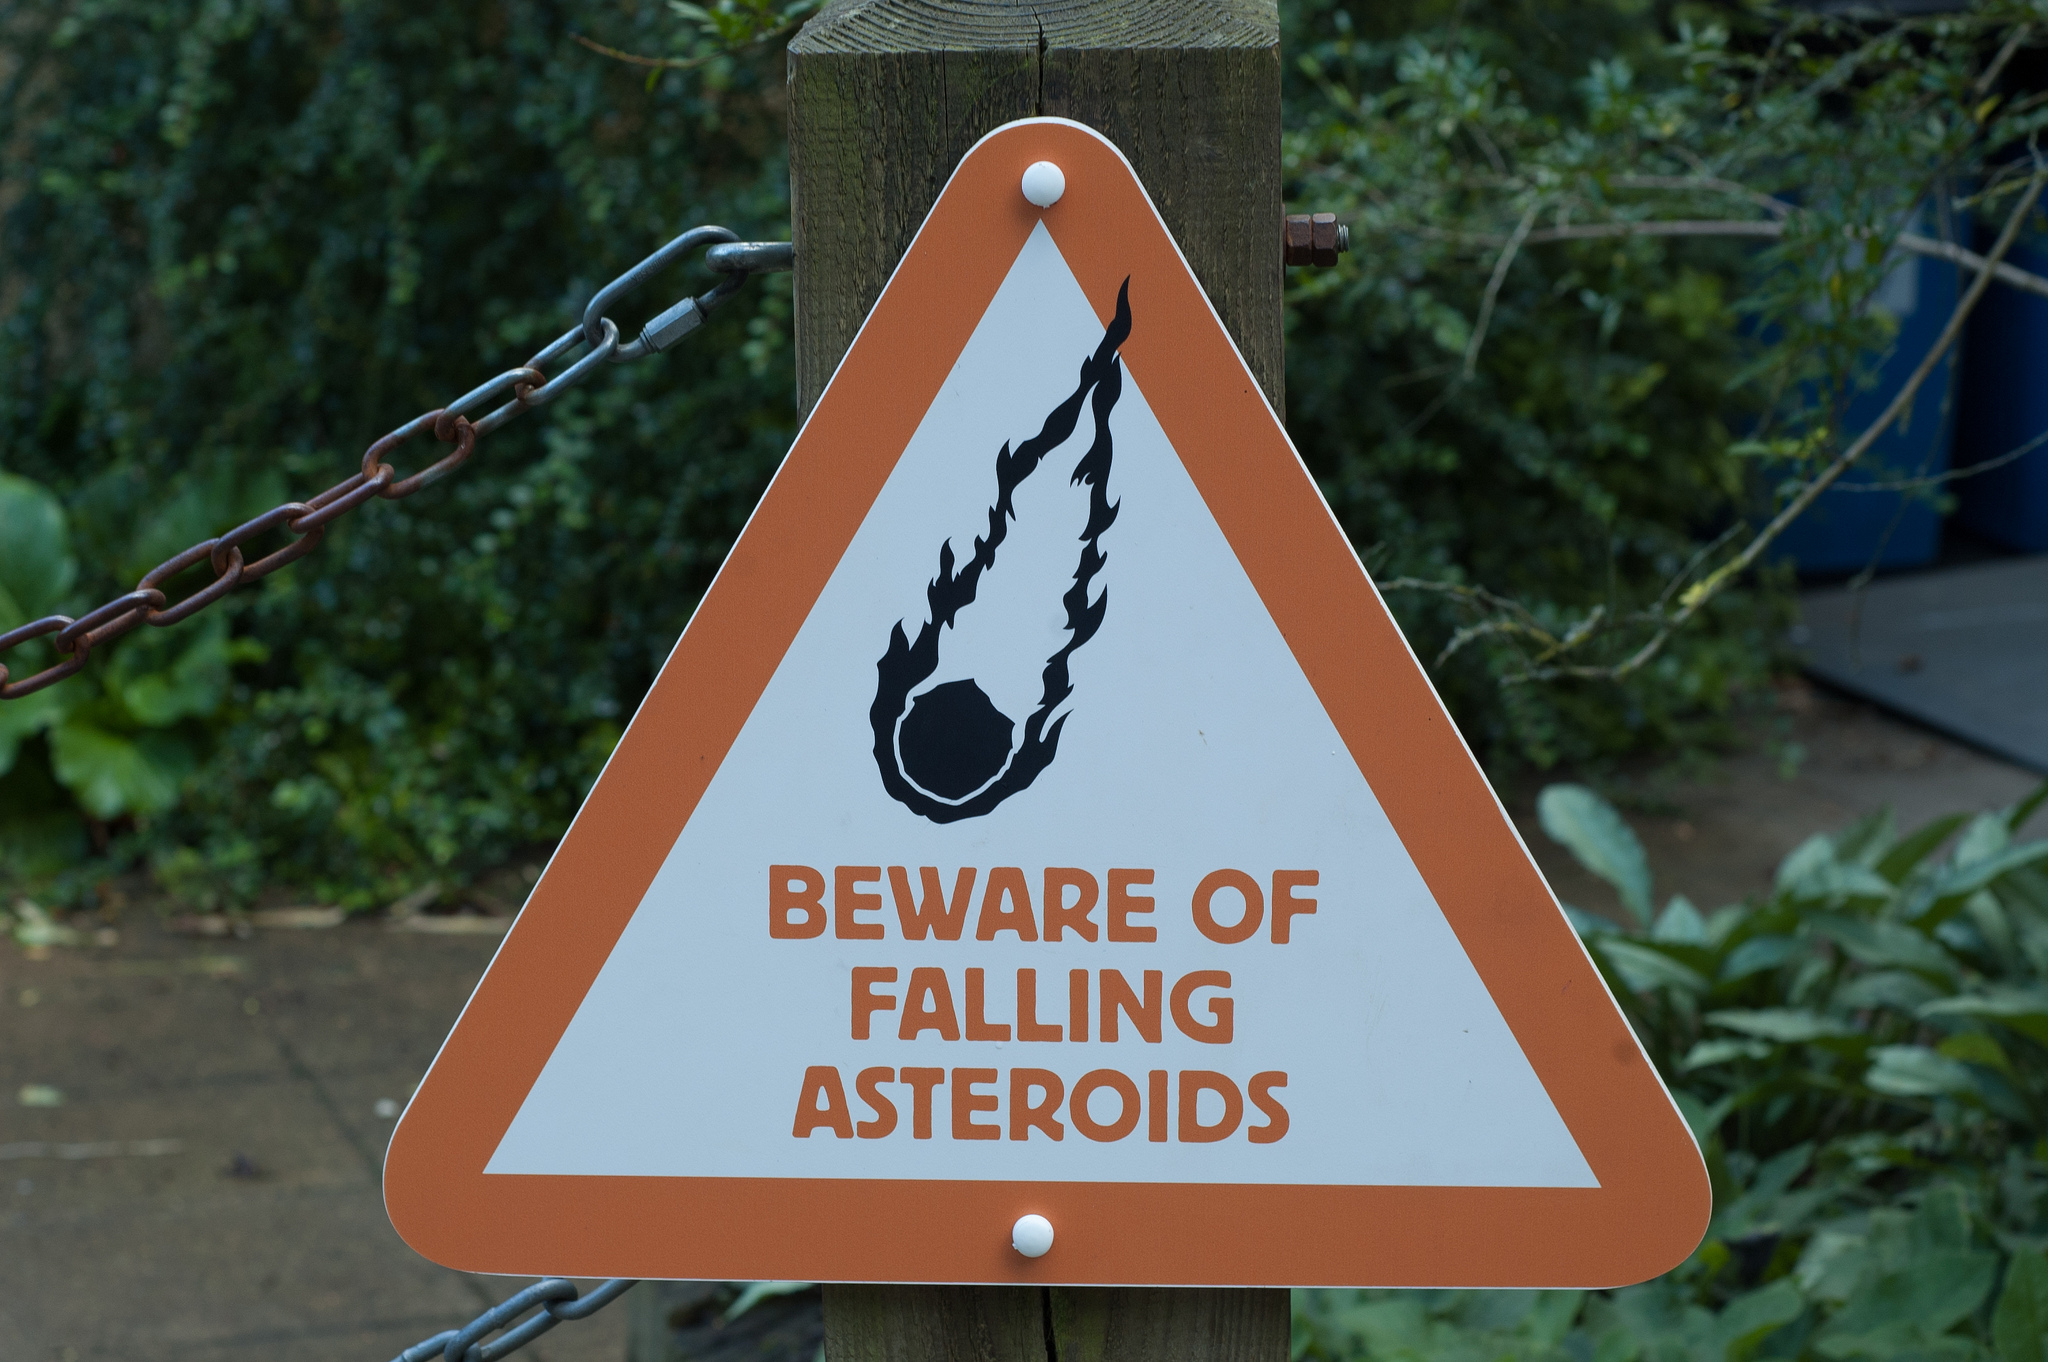 Beware of falling asteroids